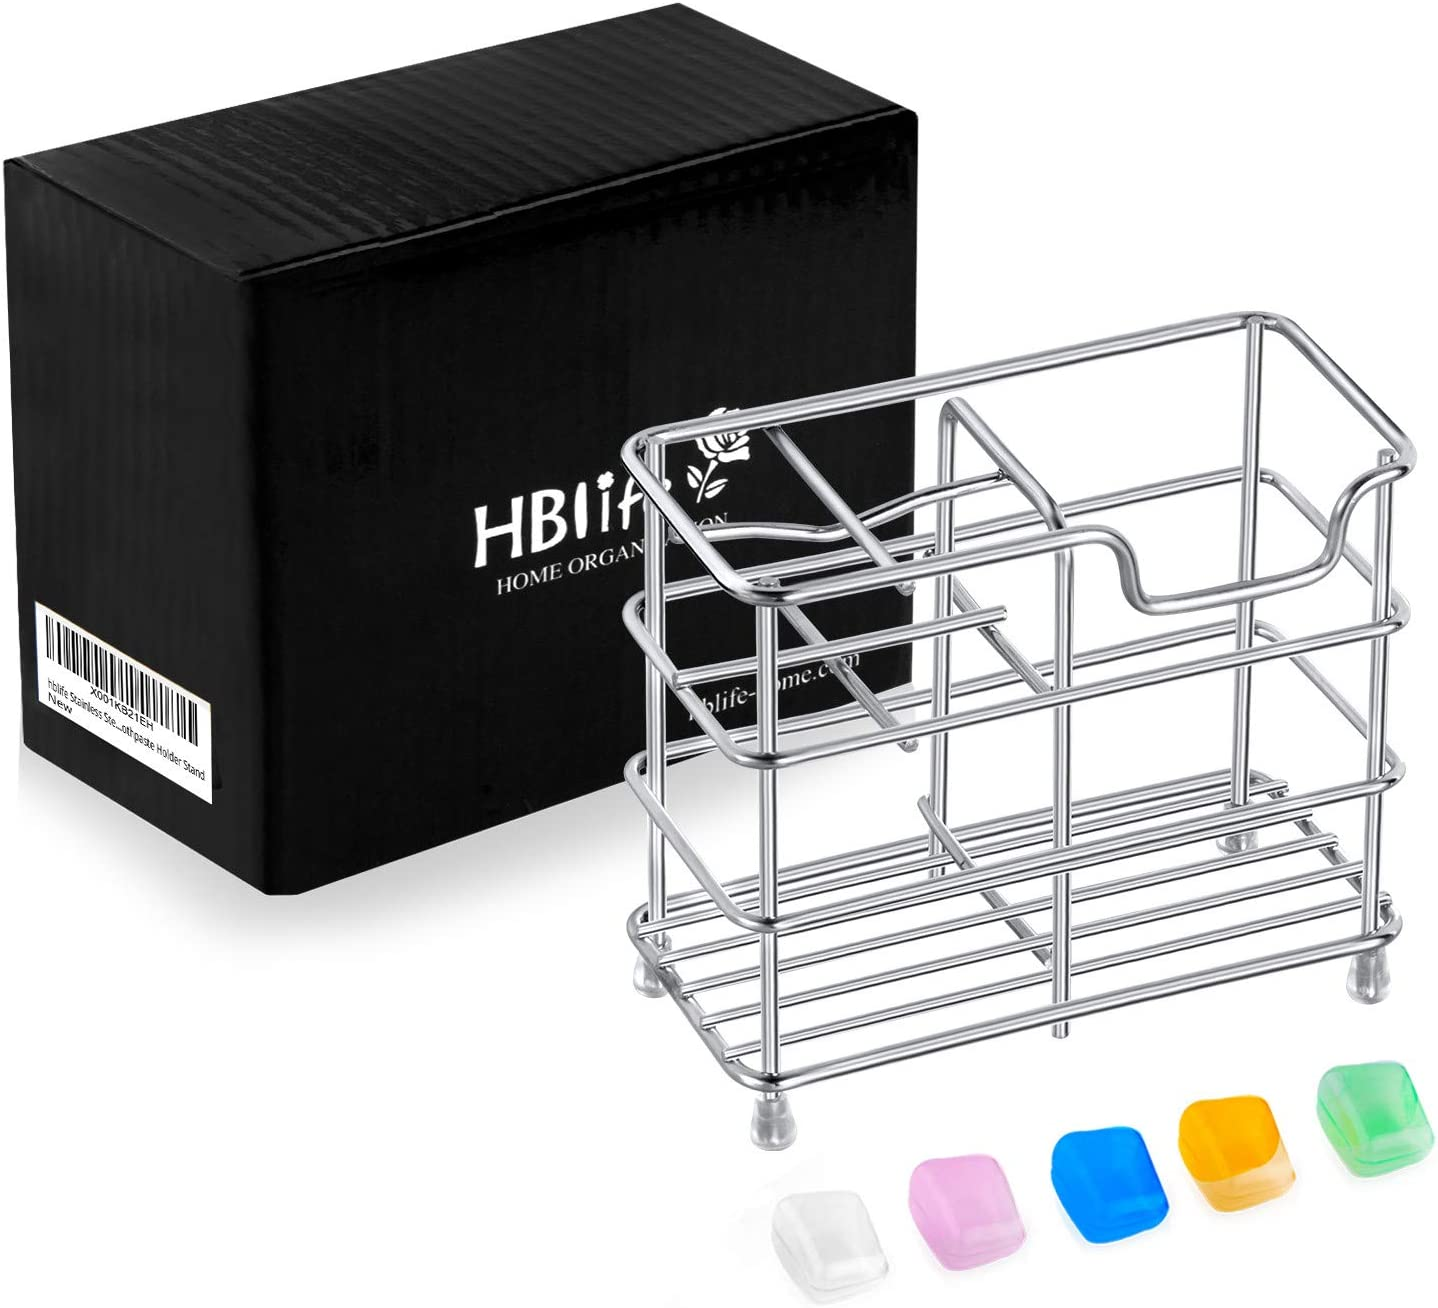 HBlife Stainless Steel Bathroom Toothbrush Holder Toothpaste Holder Stand, Silver: Home & Kitchen